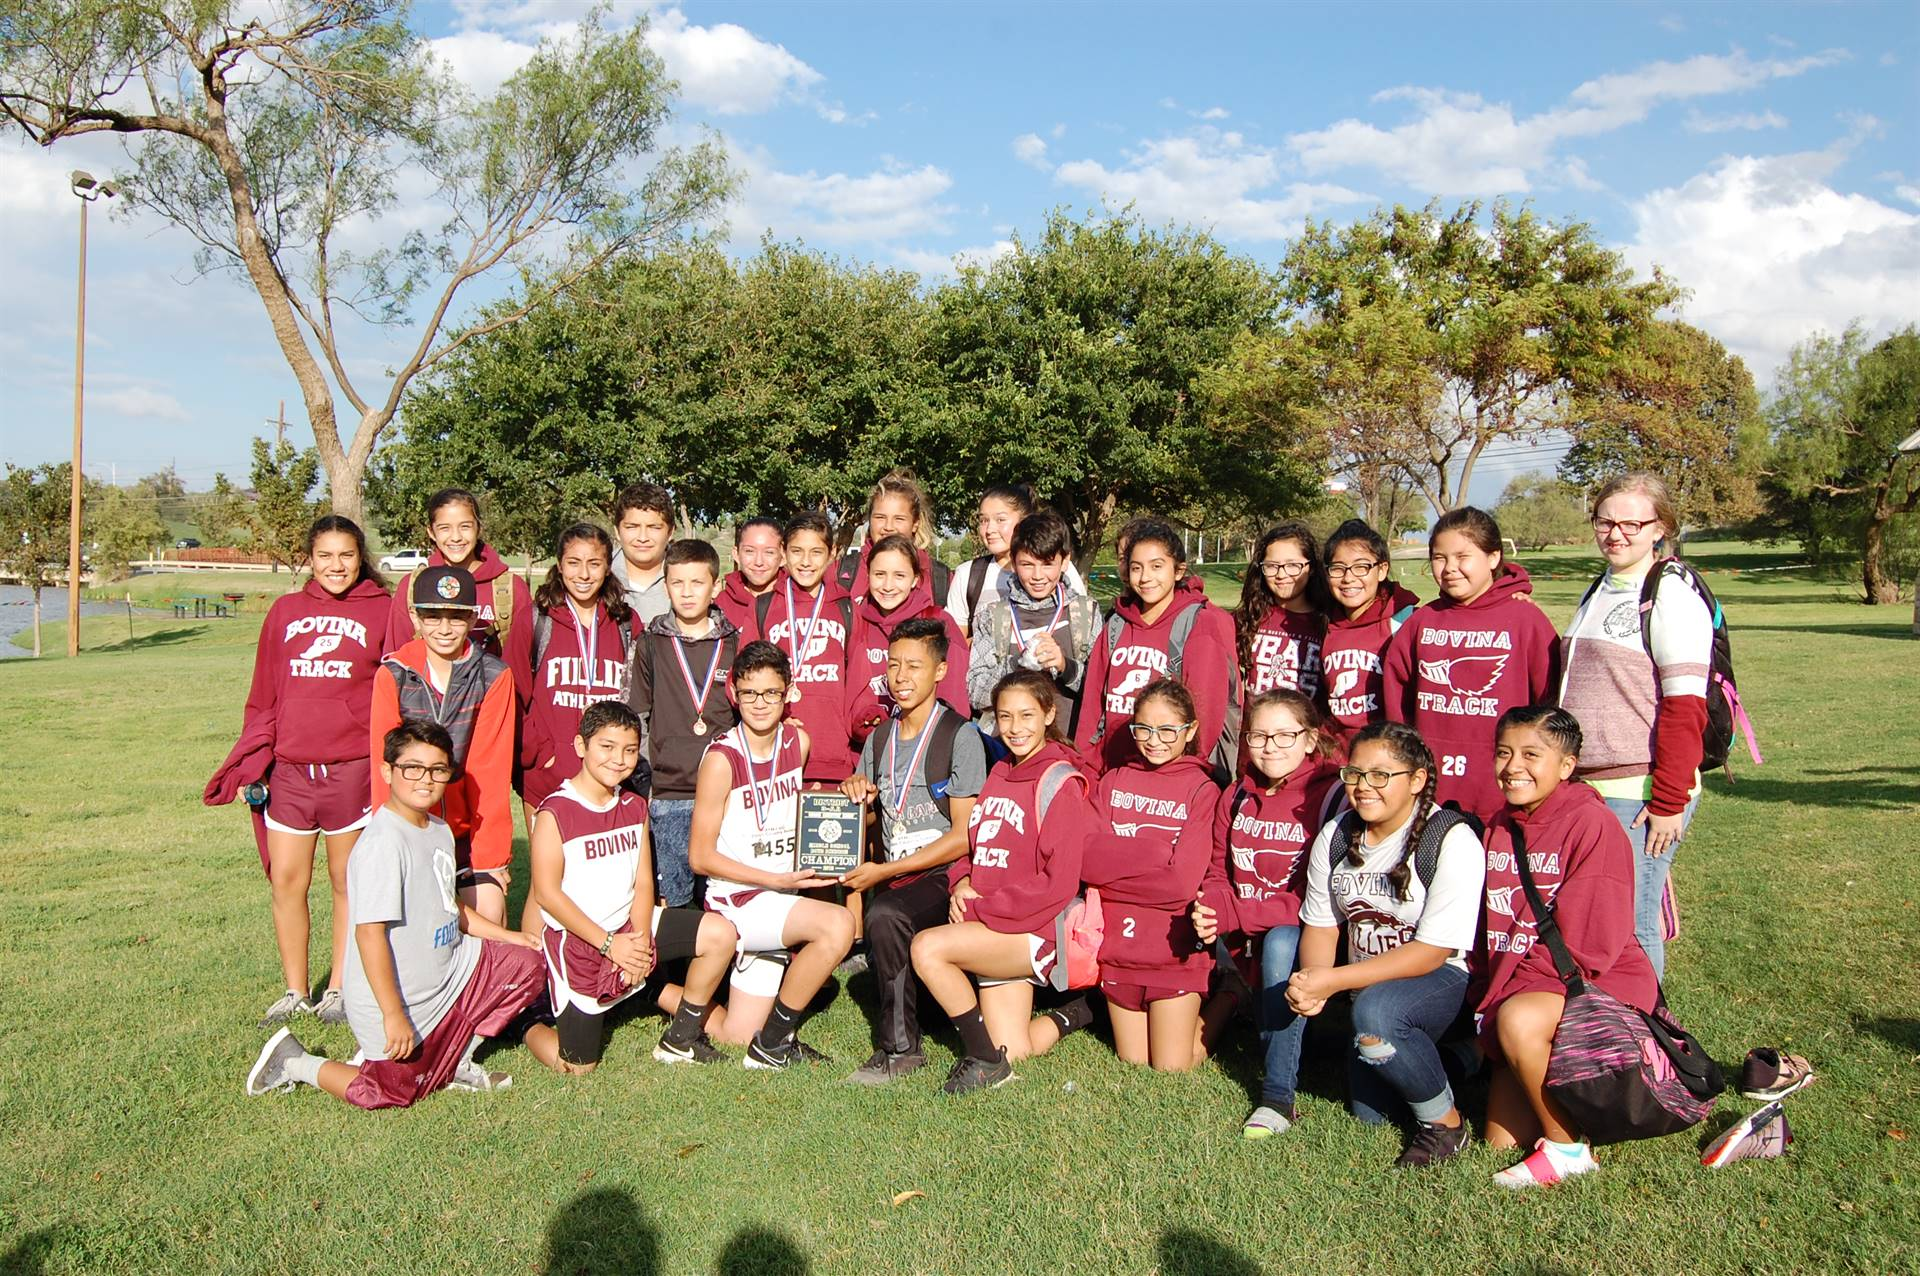 Picture of Bovina Middle School District Cross Country Team